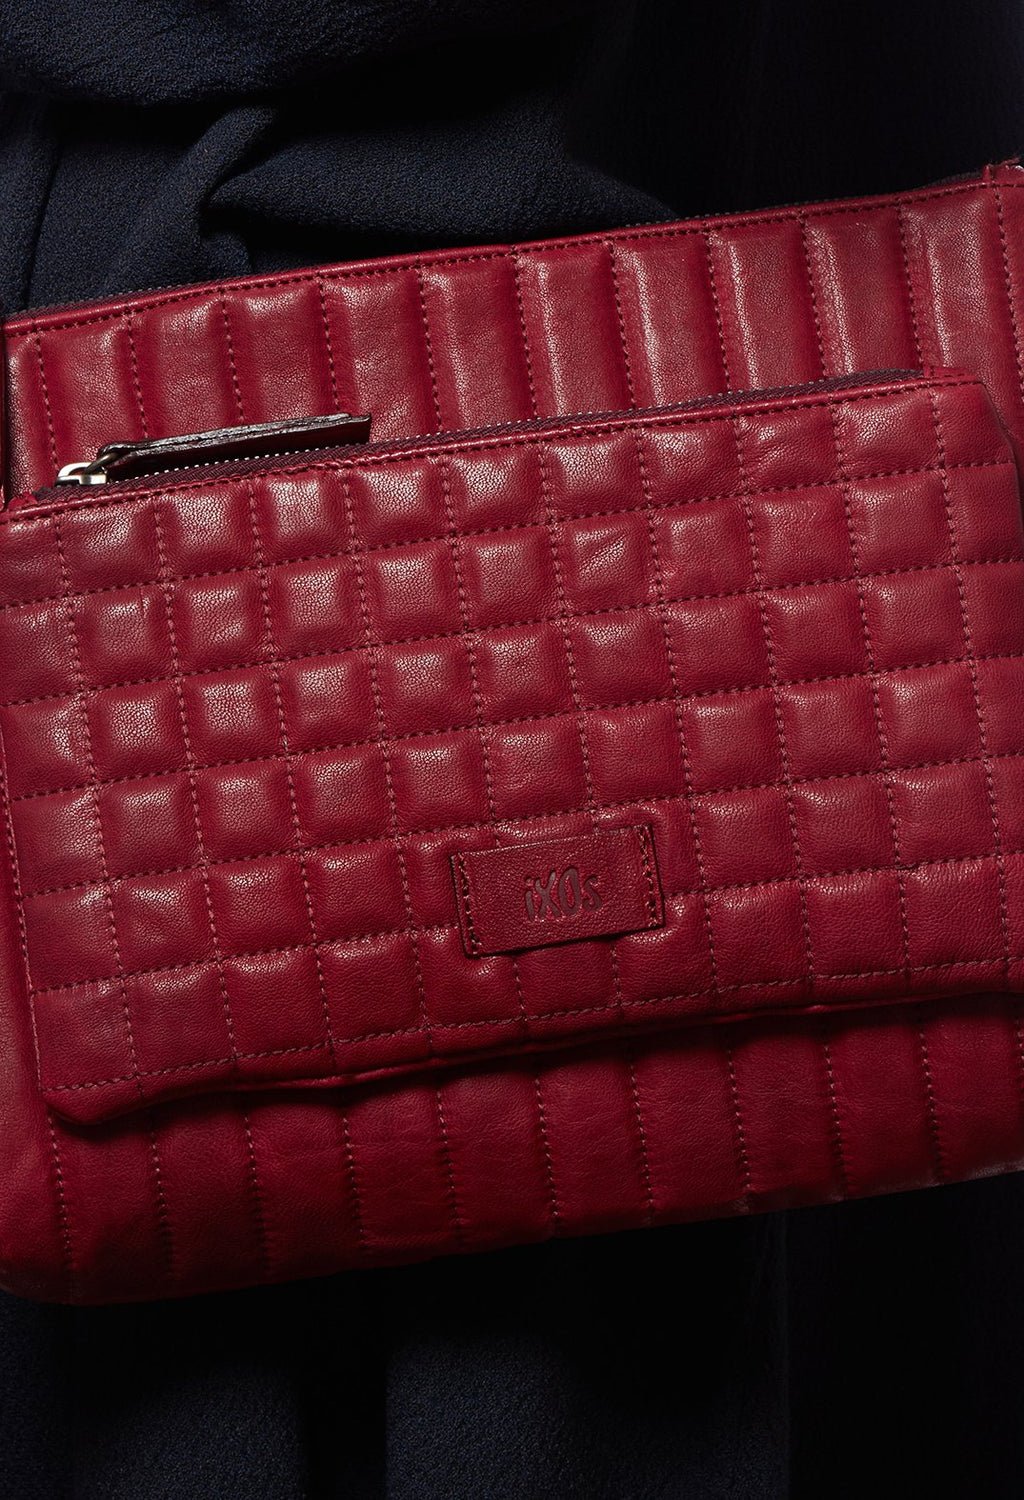 Leather Cross Body Bag in Bordeaux